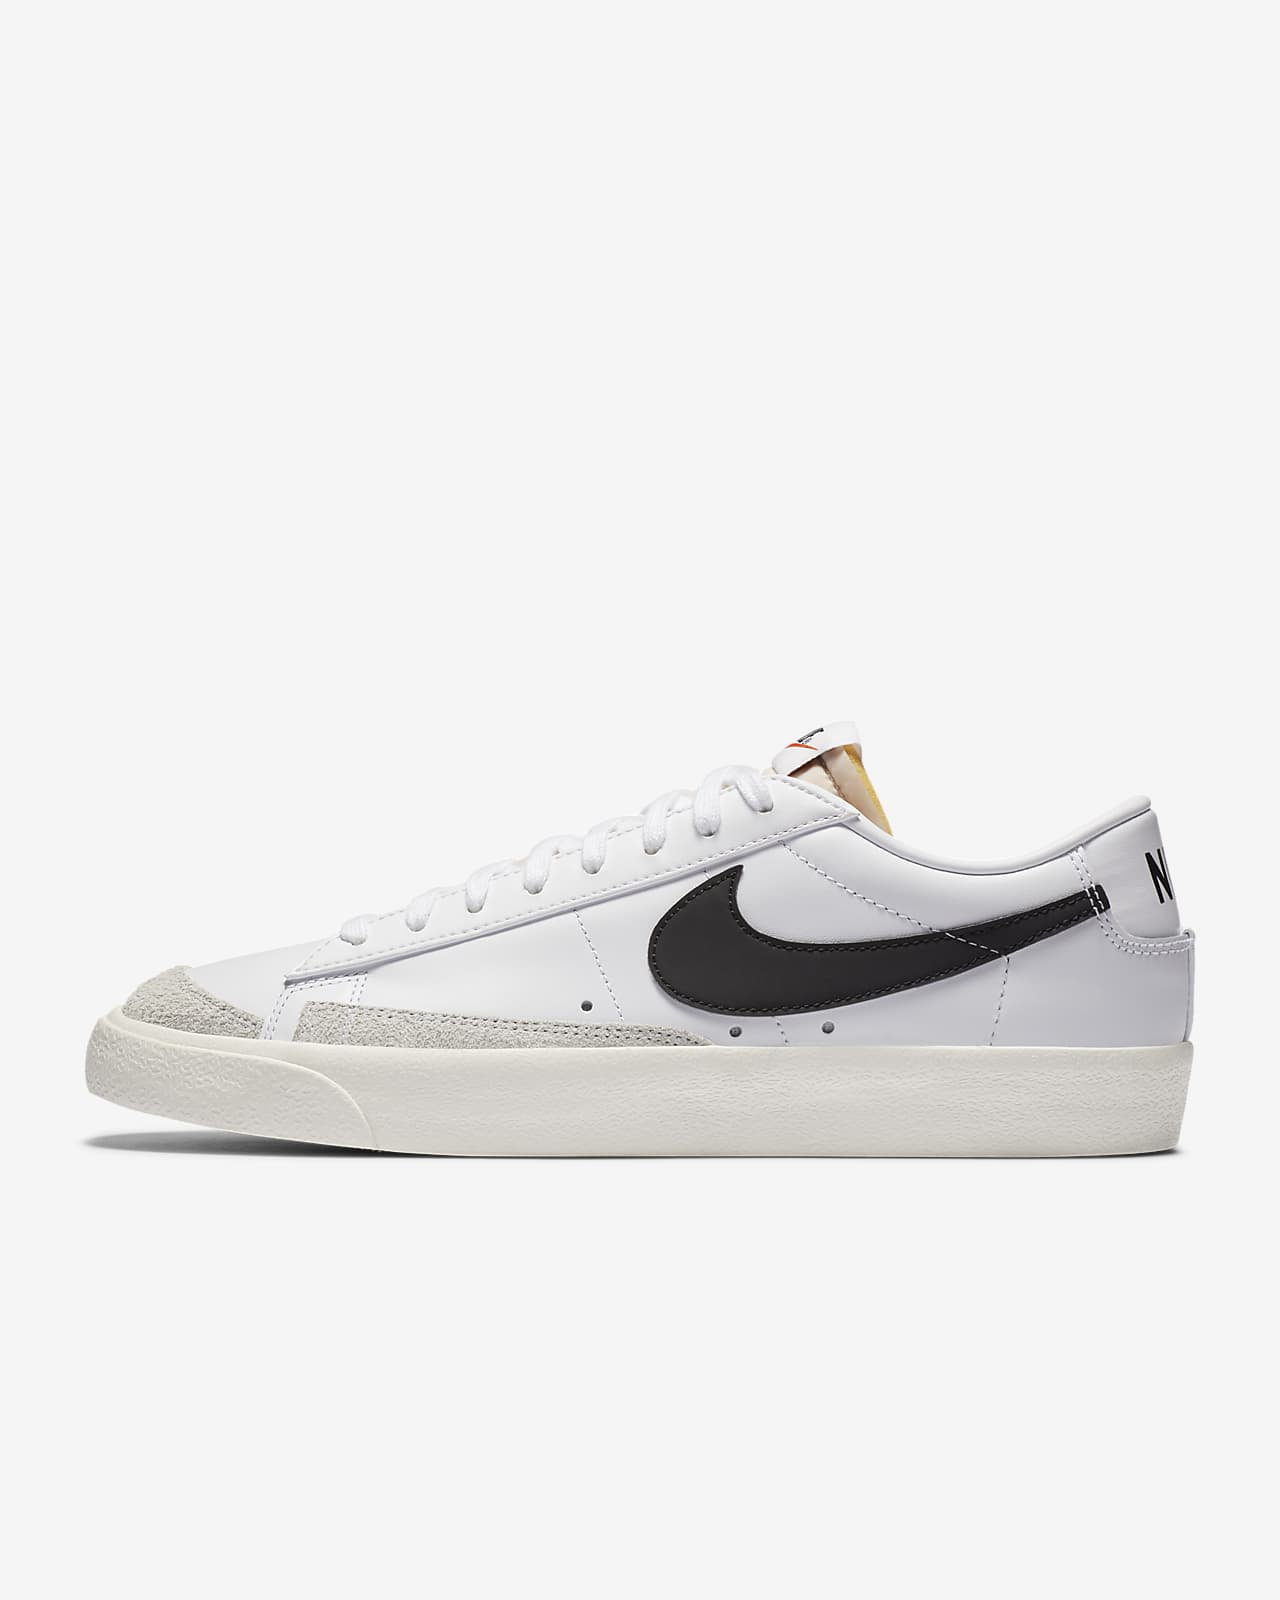 Nike Blazer Low '77 Vintage Men's Shoe